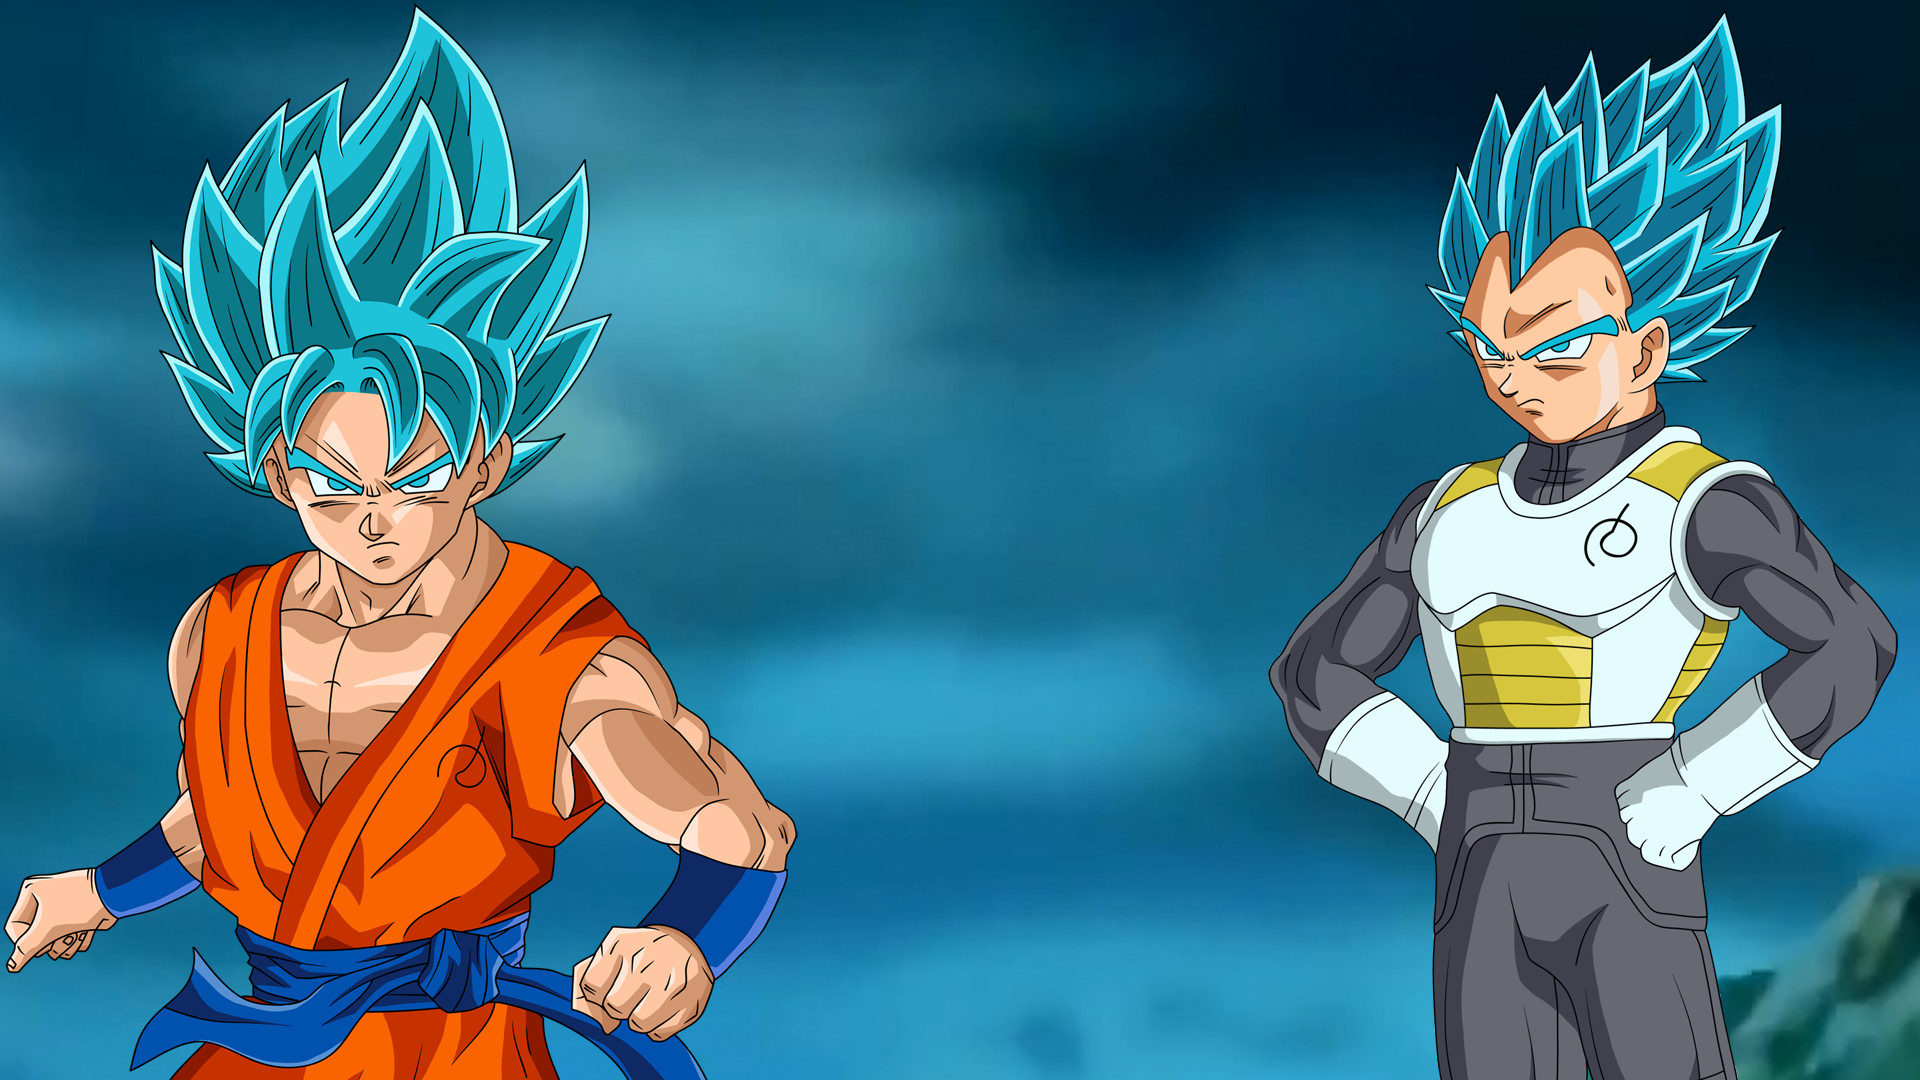 Dragonball Z, Internet, Backgrounds, Wallpapers, Image, The, Things